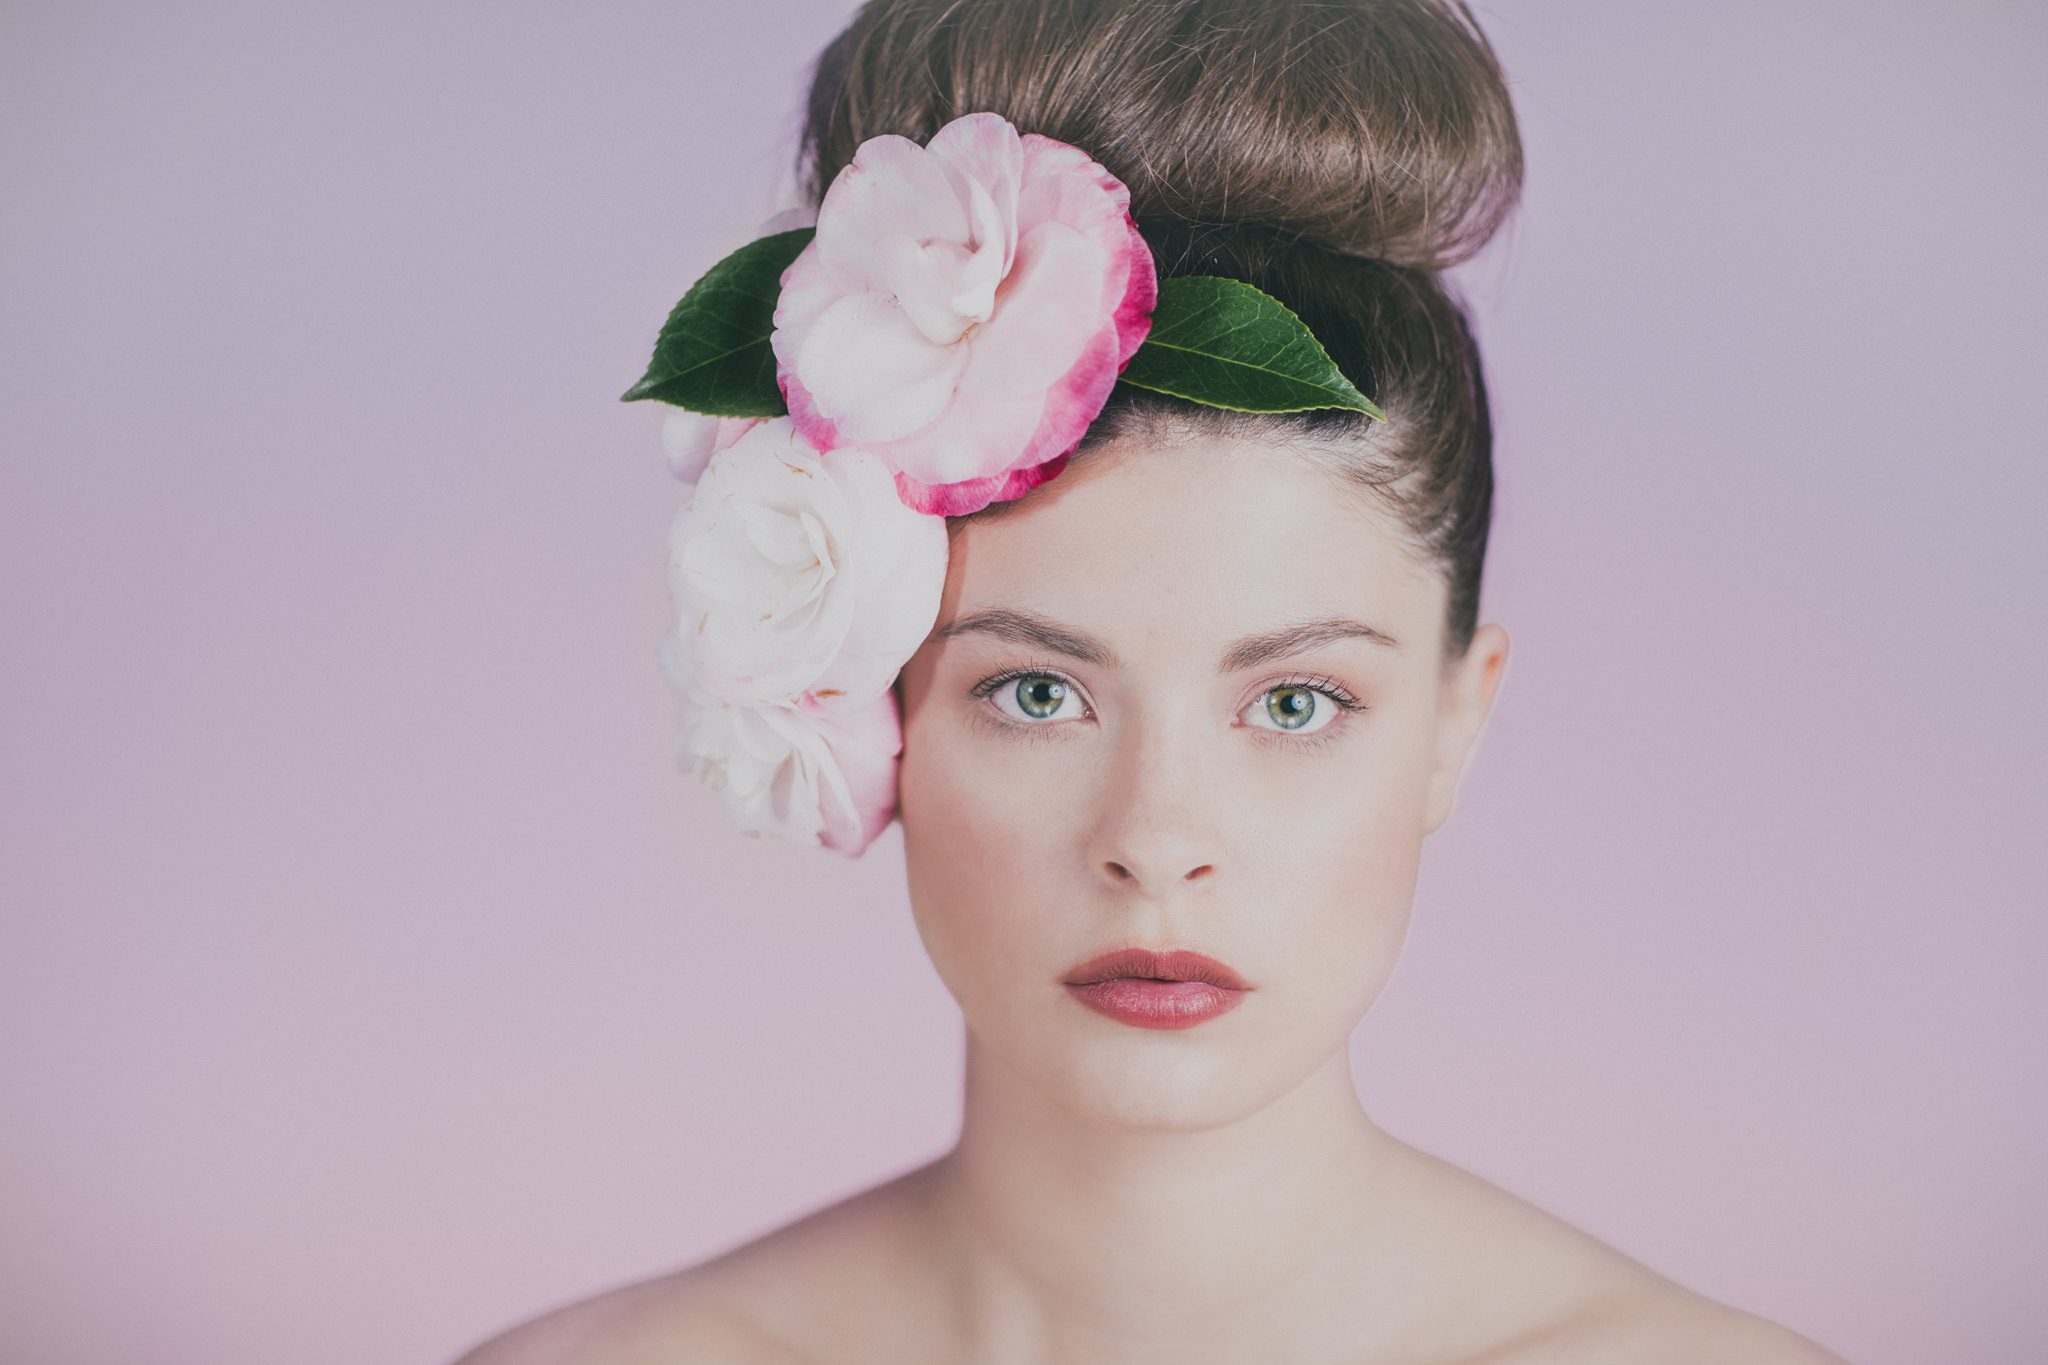 flower portrait of girl with pink background - beauty photography in australia